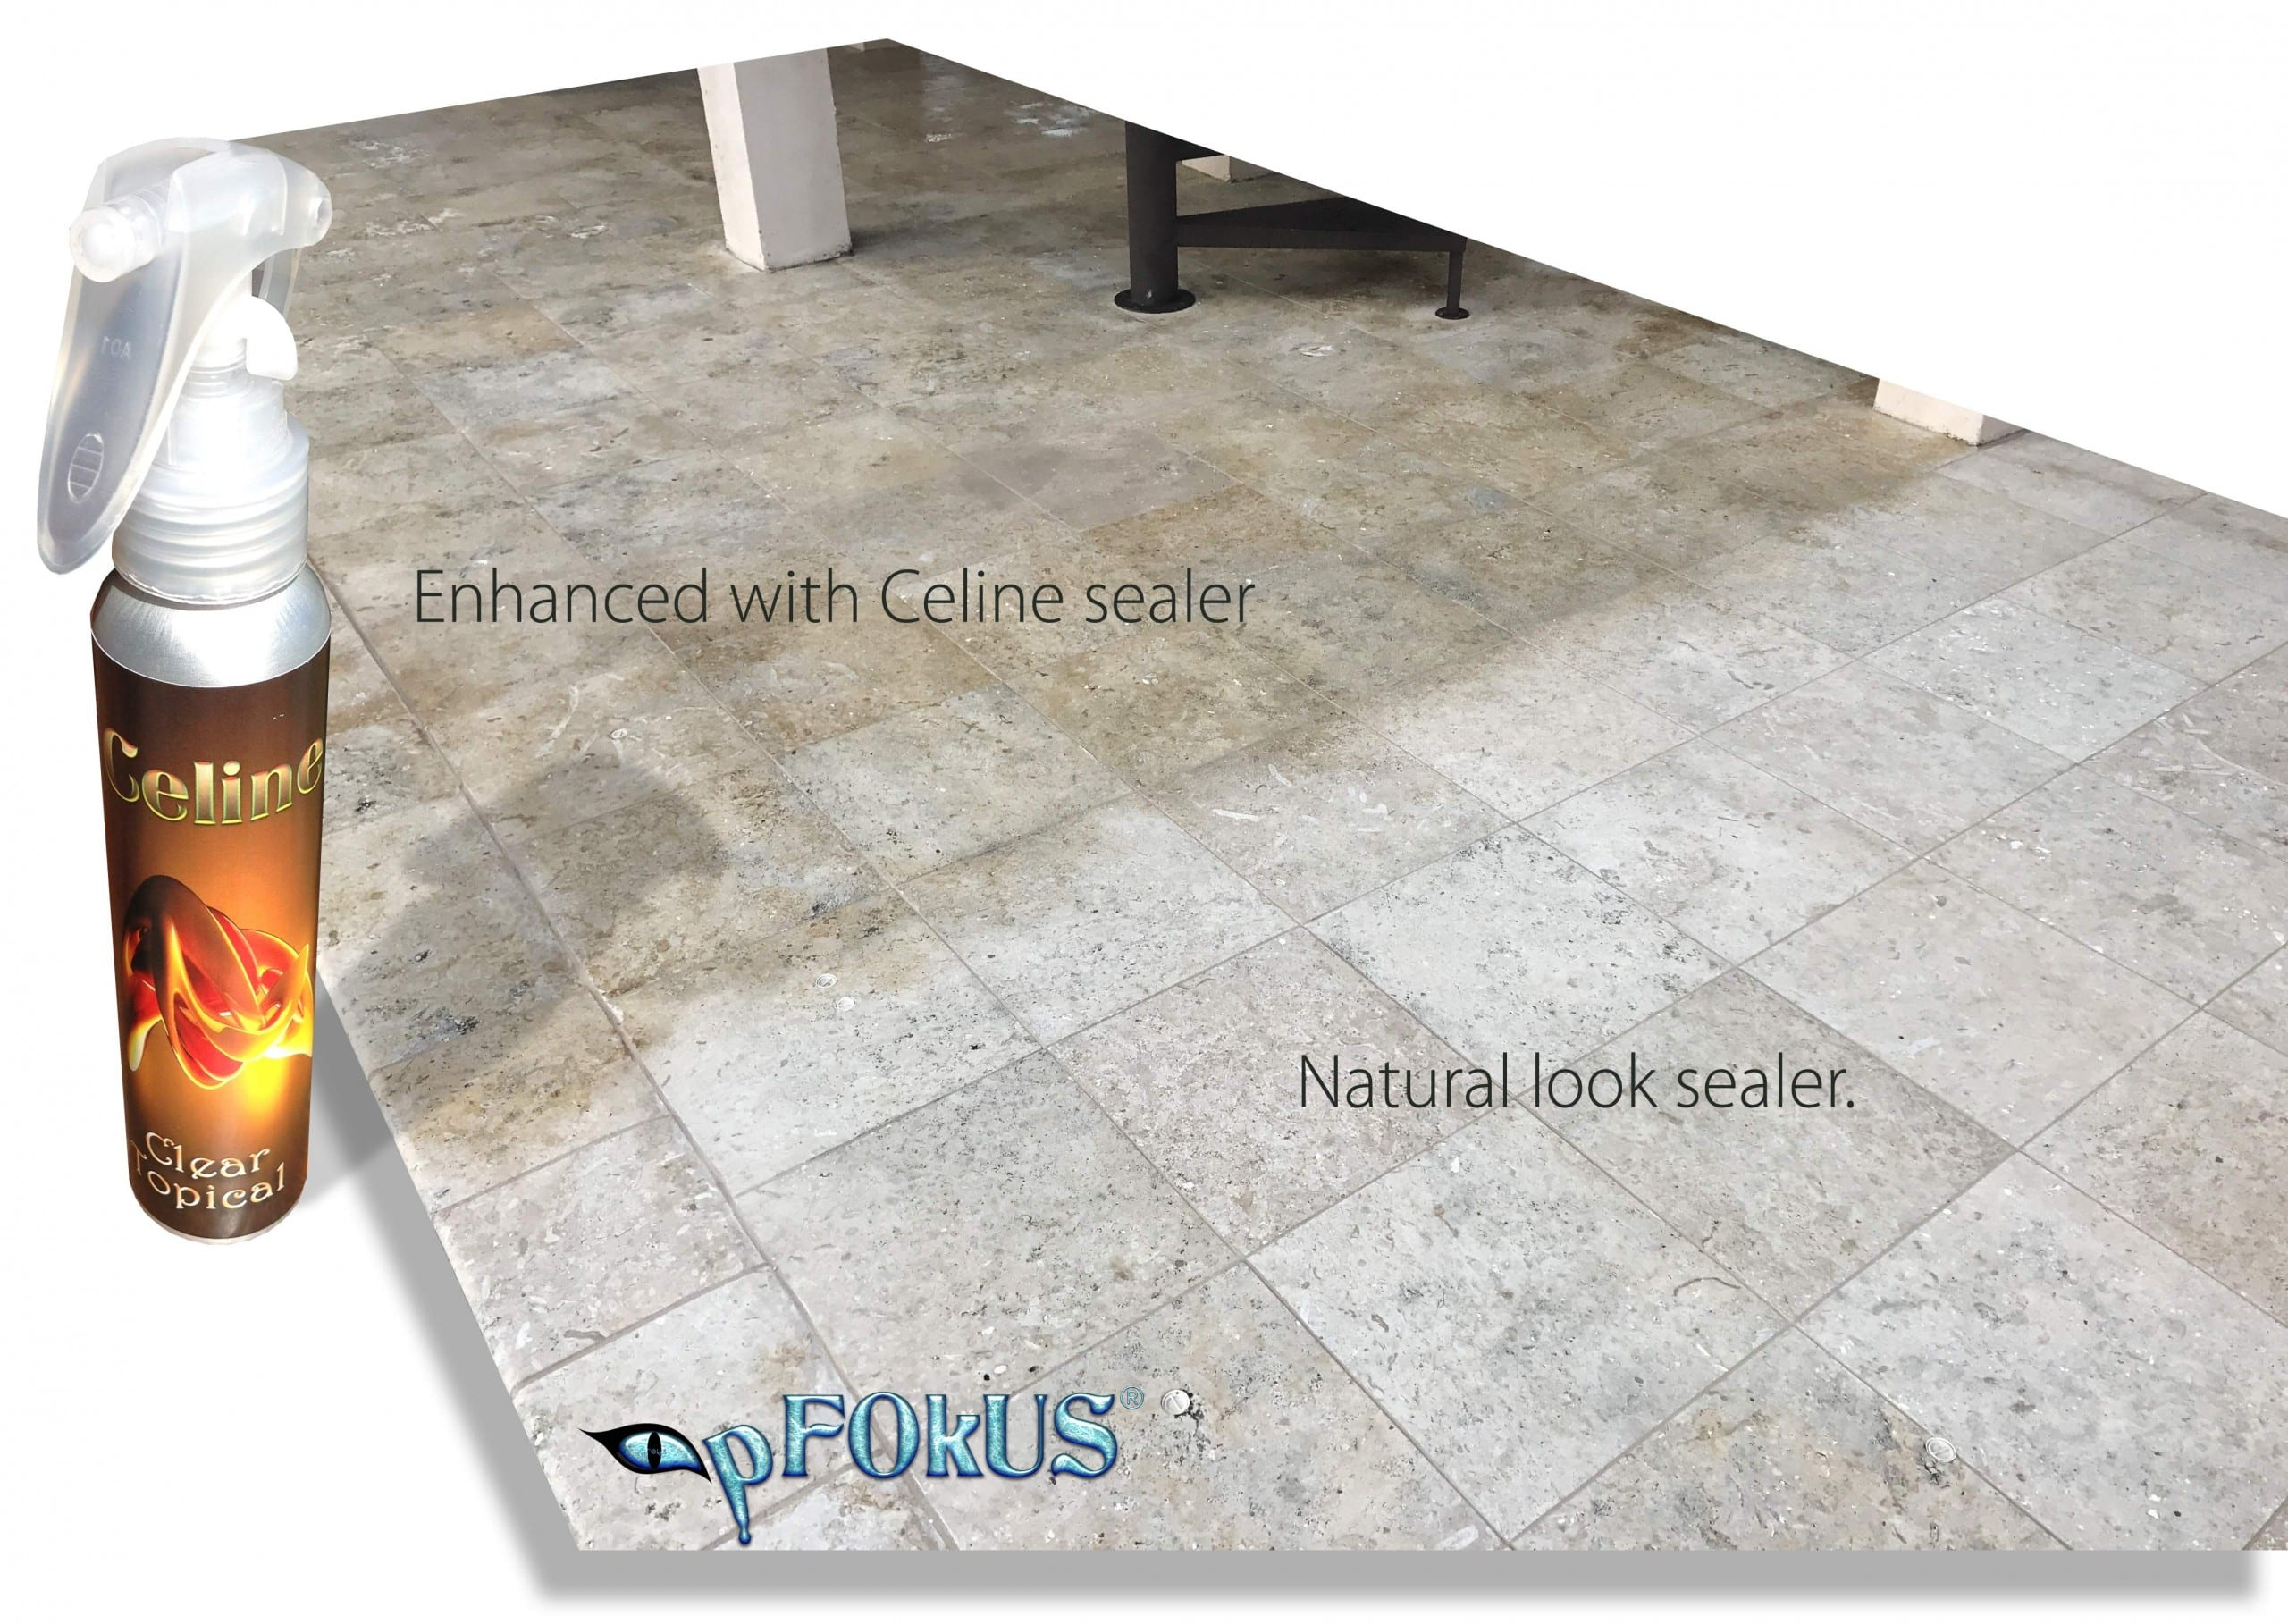 pFOkUS-Enhance-Celine-Sealer-Travertine